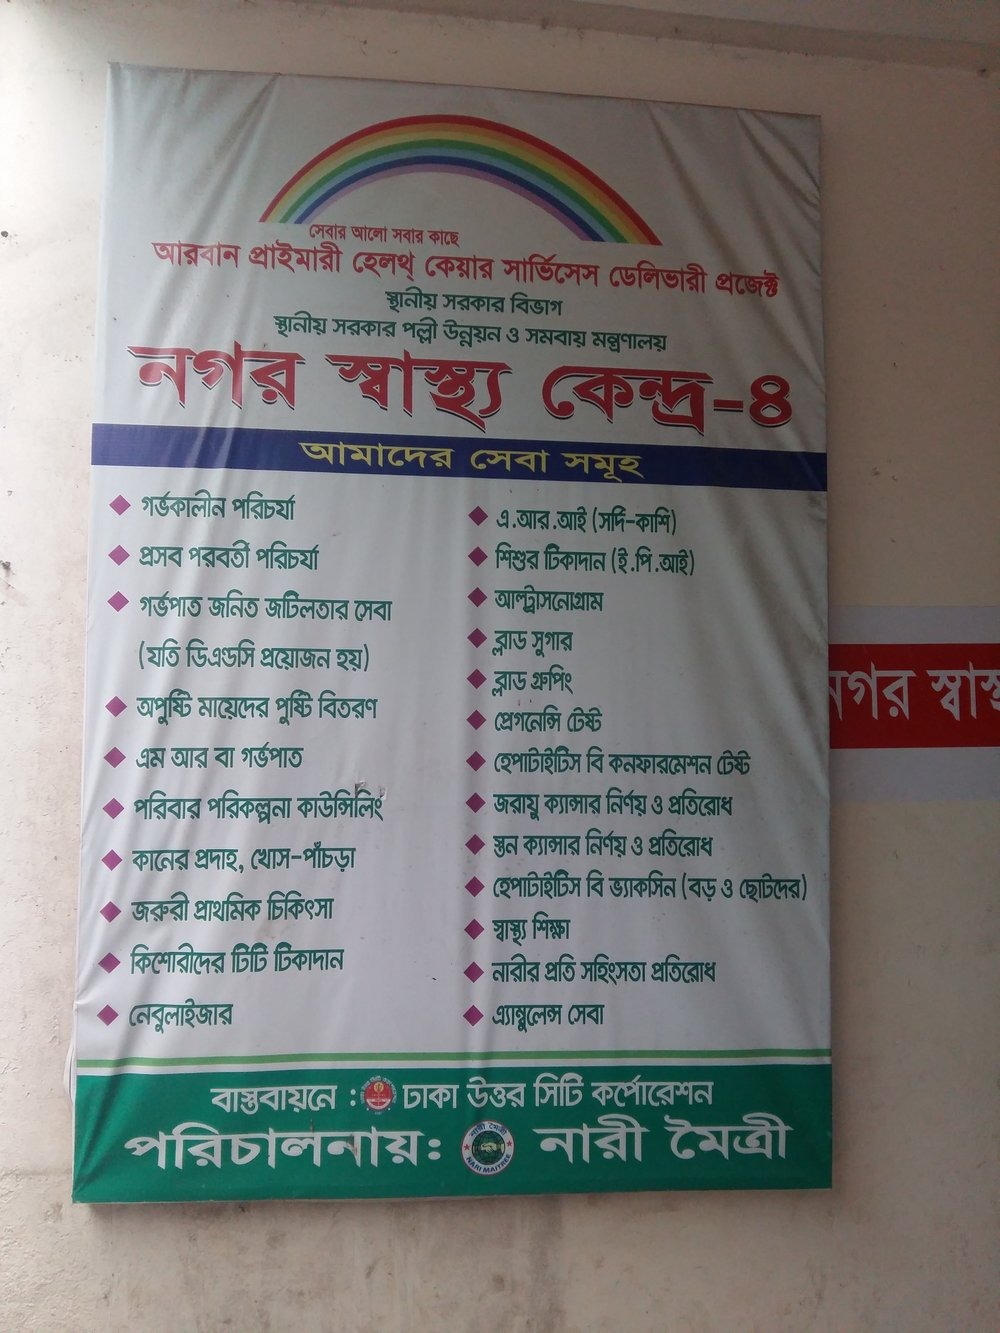 List of services at Nari Maitree Clinic in Amtali